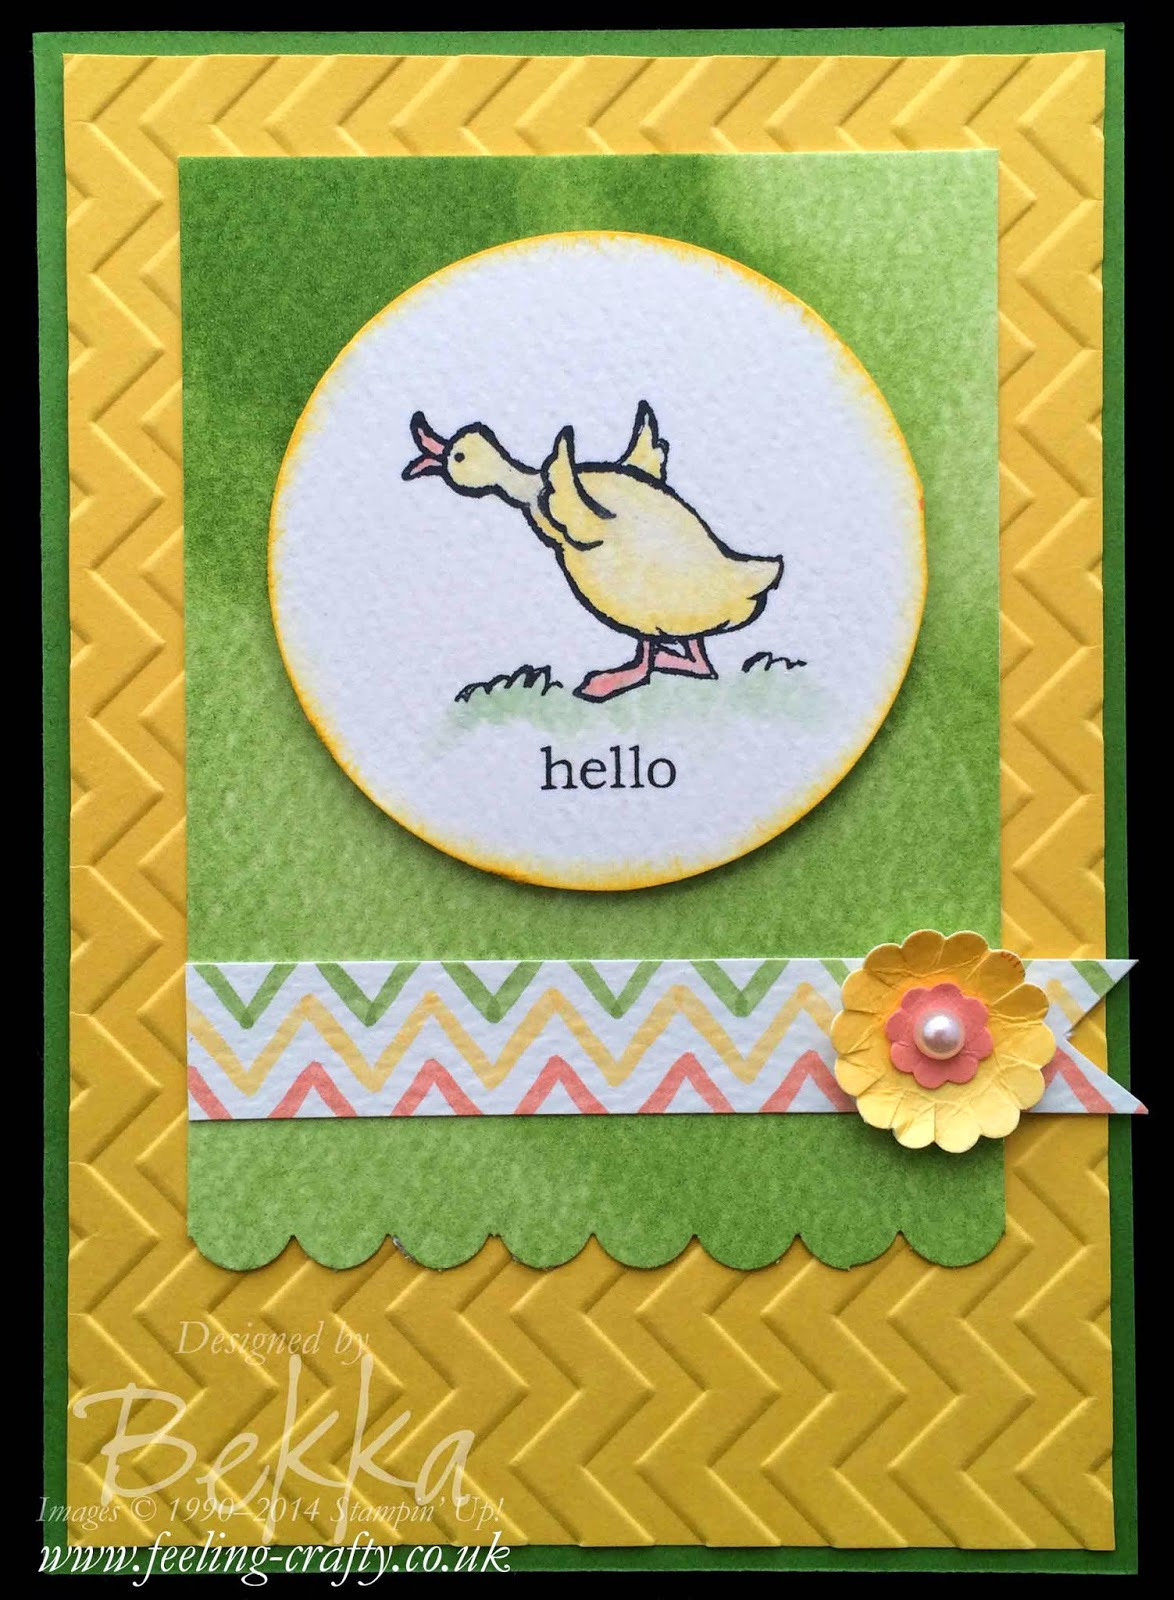 Hello Duck Storybook Friends Card by Stampin' Up! UK Demonstrator Bekka - what a lovey way to keep in touch!